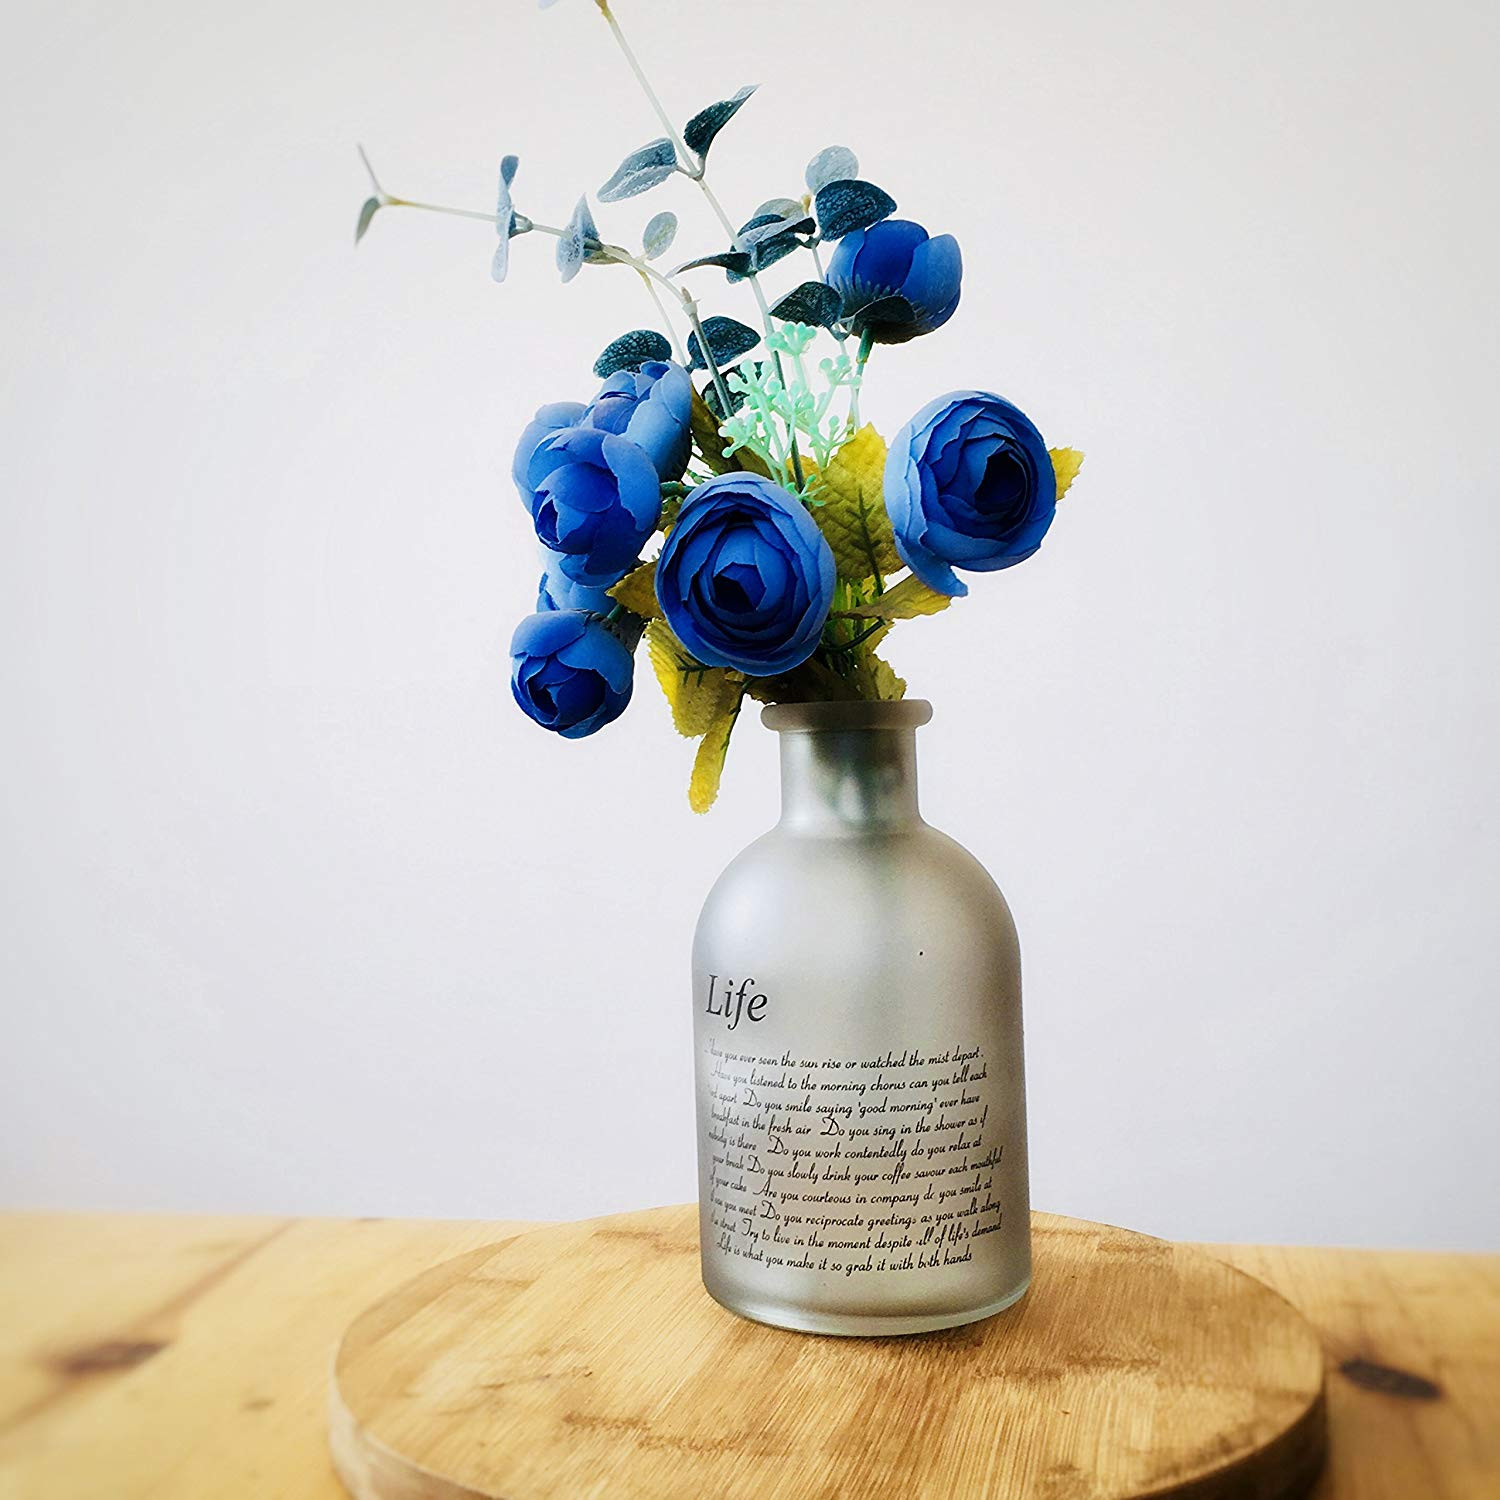 Small Vintage Glass Vases Of Amazon Com Flowersea Decorative Frosted Glass Bottle Bud Vases for Regarding Amazon Com Flowersea Decorative Frosted Glass Bottle Bud Vases for Flowers Modern Design with Life Poem Laurel Clear Home Kitchen